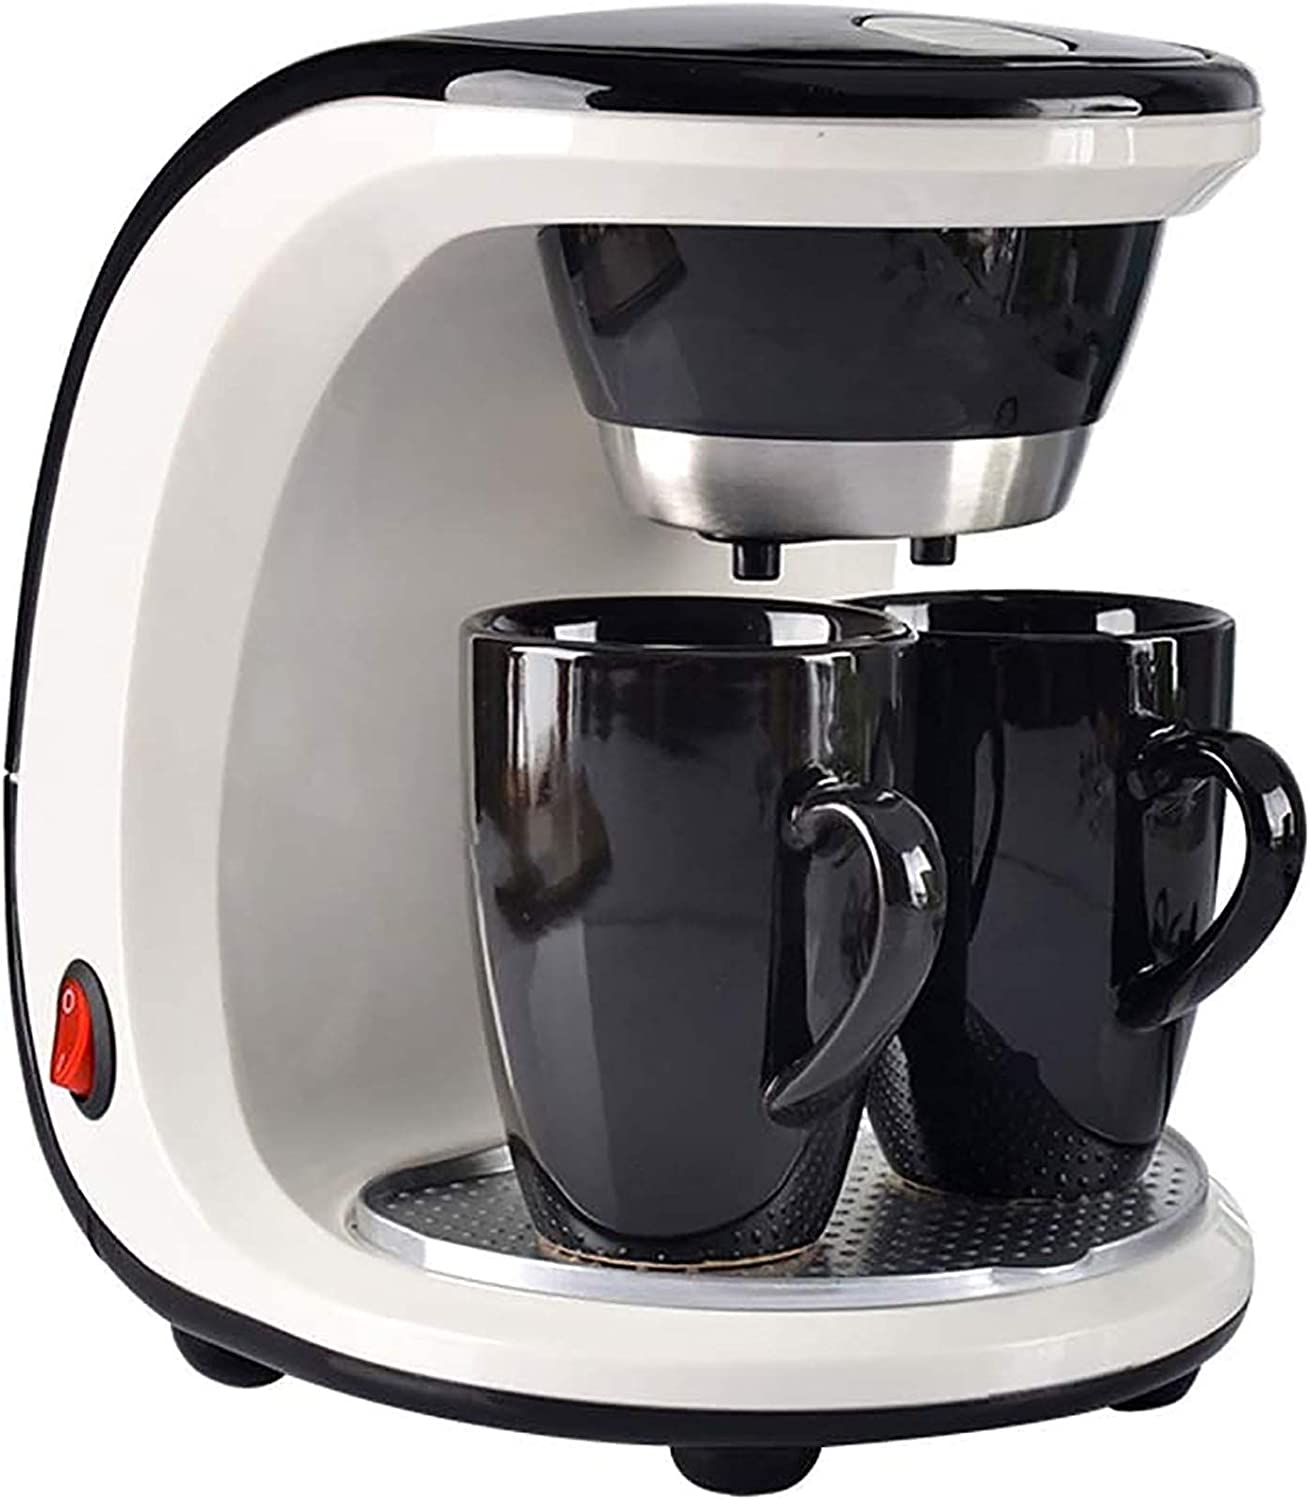 Filter Coffee Japan Maker New Machine Home Small Ma Automatic Fresno Mall Drip